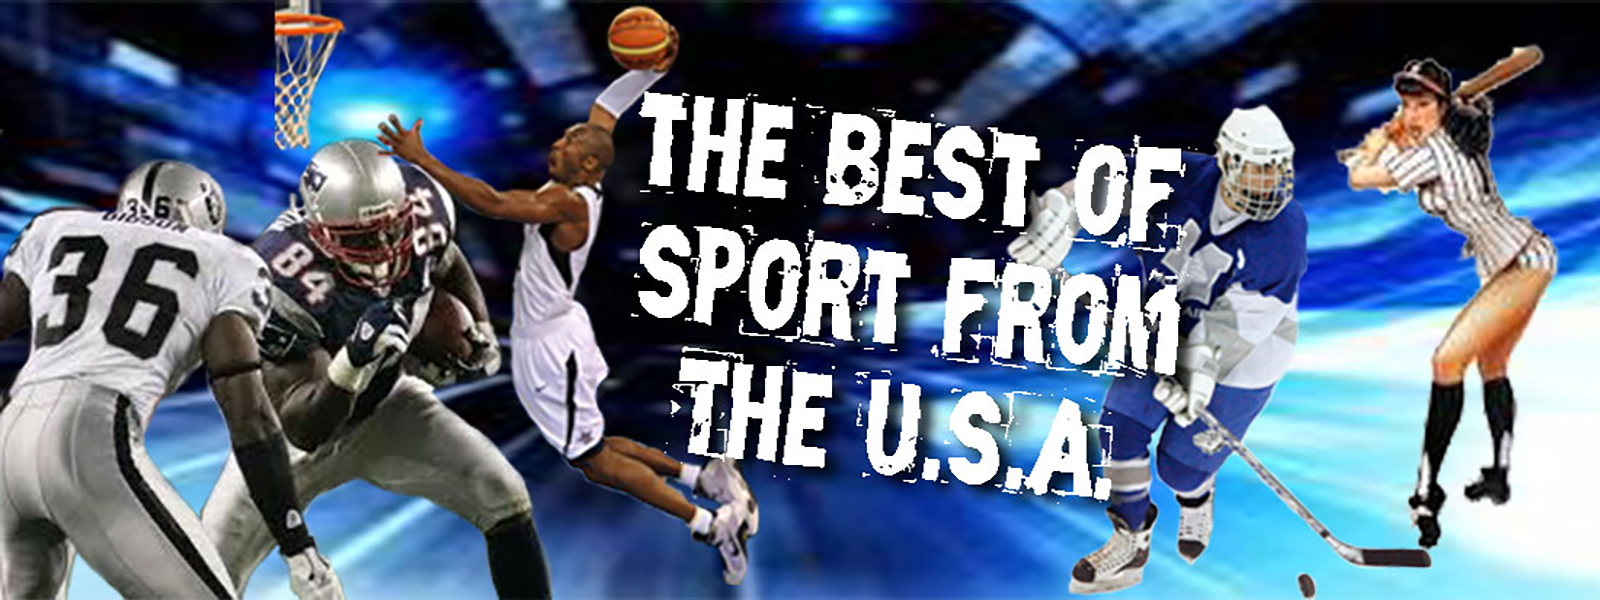 The Best of sport from the USA on at Walkabout Sports Bar, the very best Aussie sports bar in Karon Beach, Phuket, Thailand.